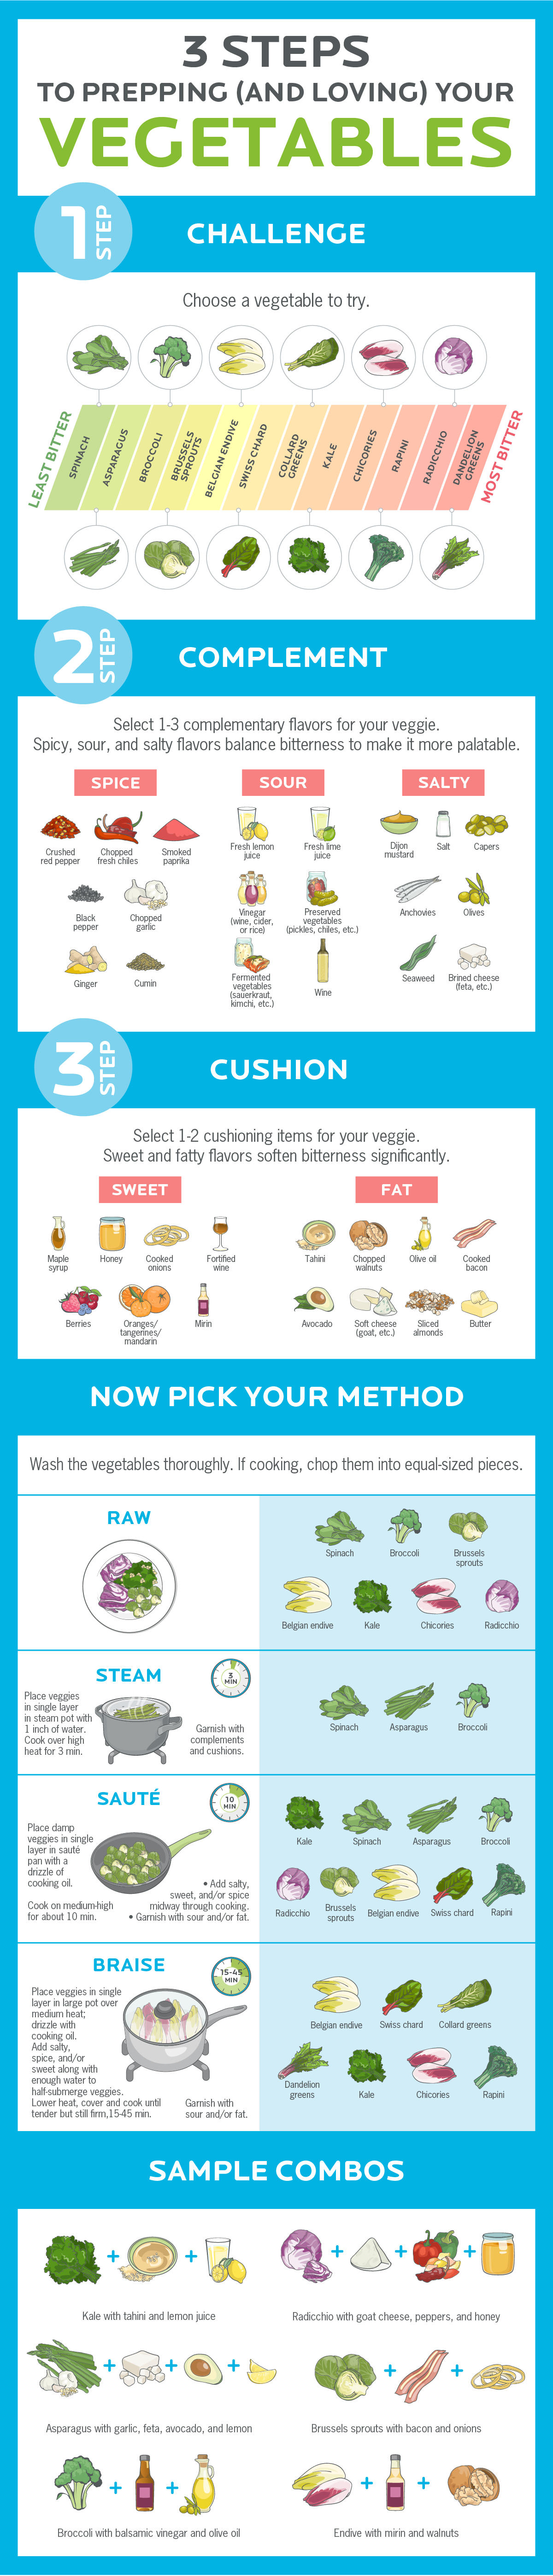 3 Steps to Prepping and Loving Your Vegetables #infographic